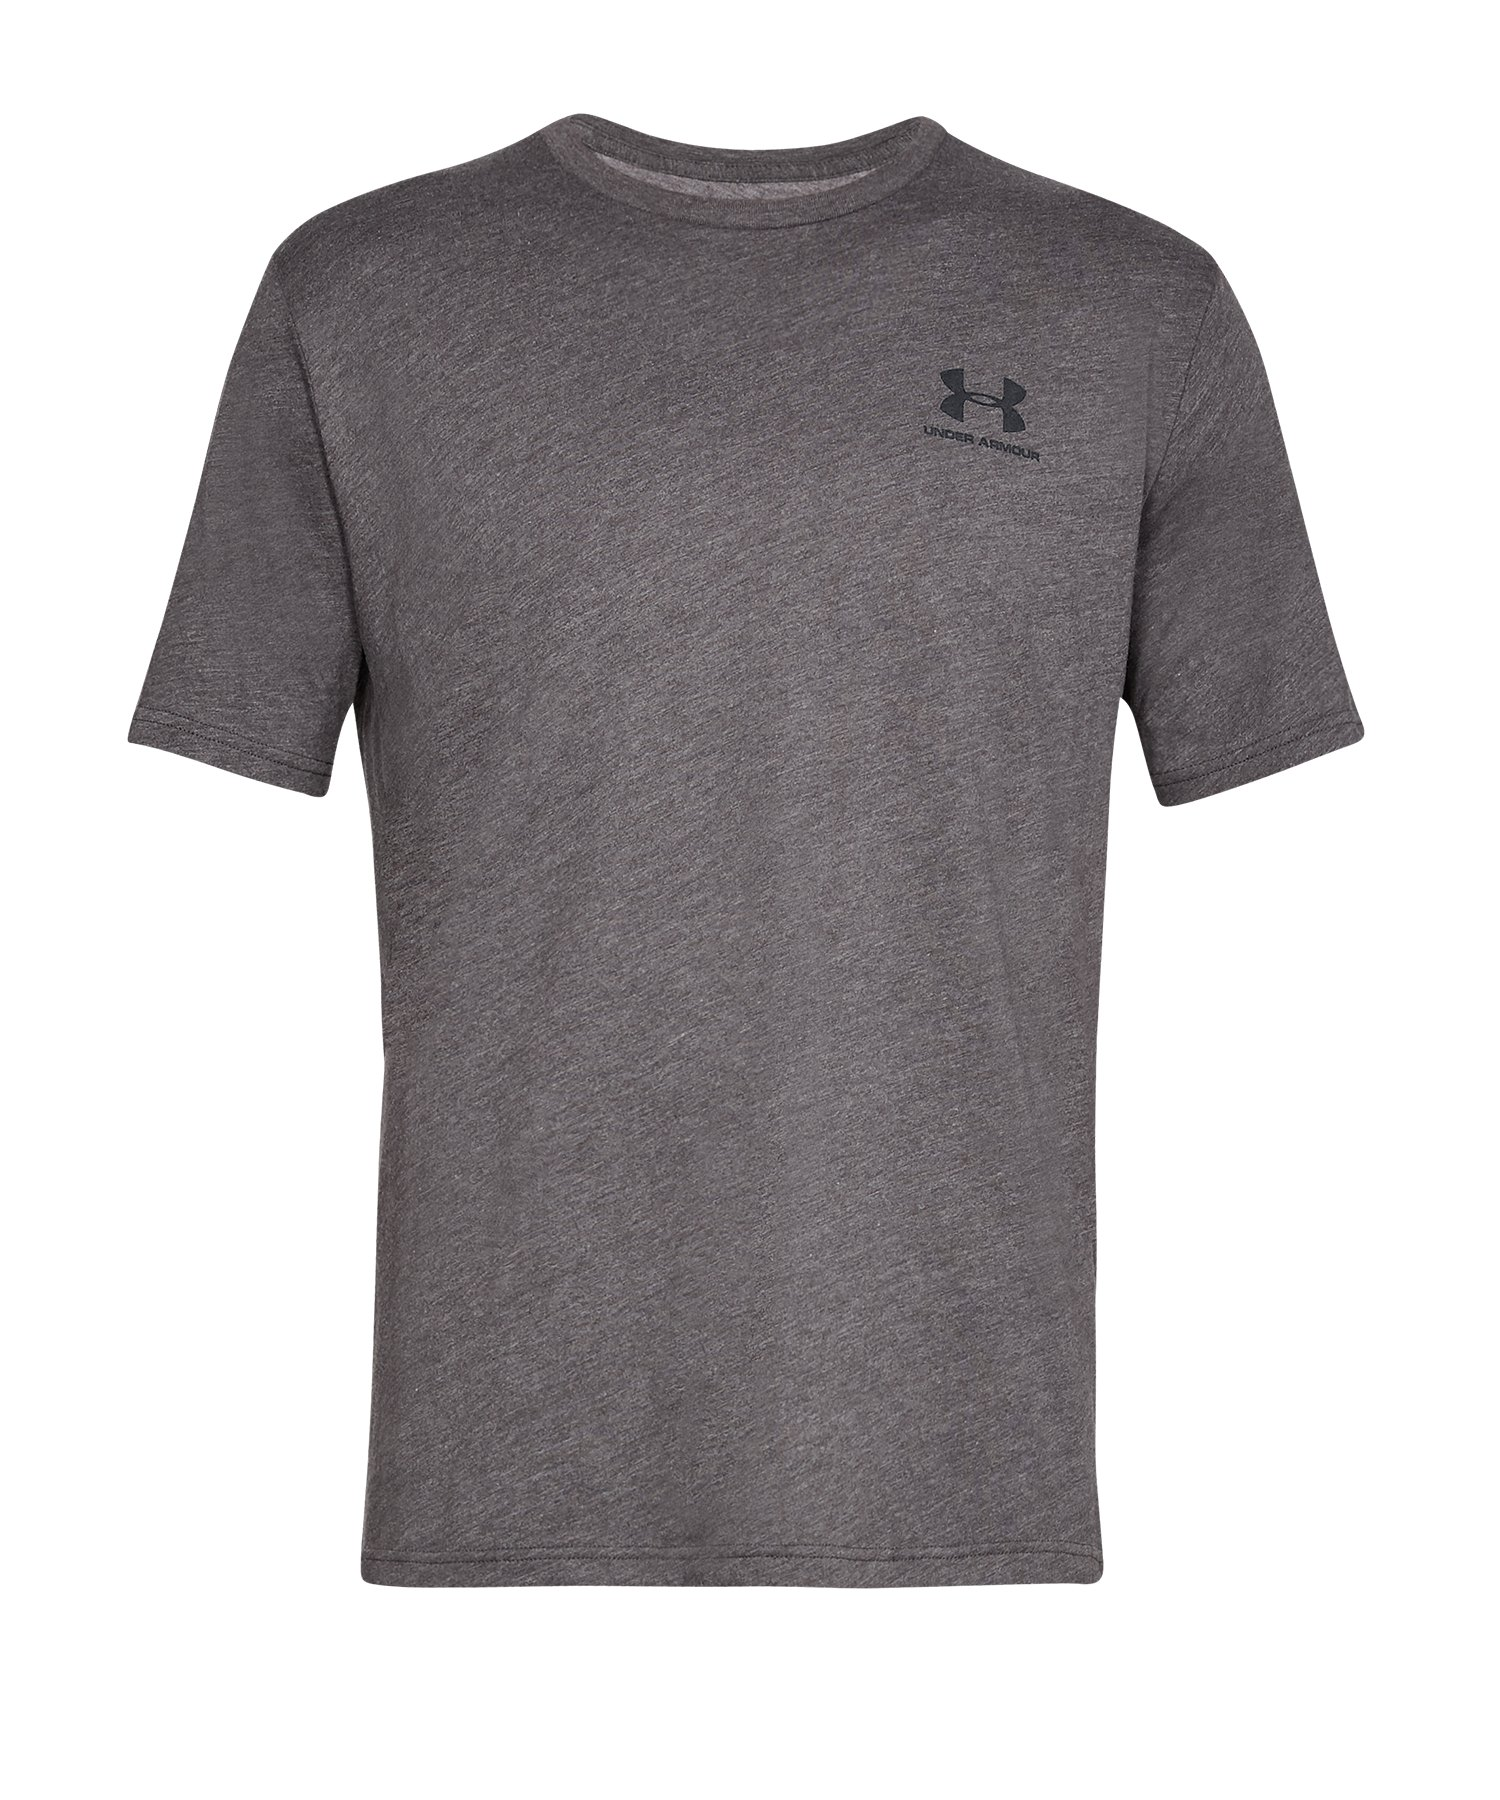 Under Armour Sportstyle Left Chest T-Shirt F019 - Grau